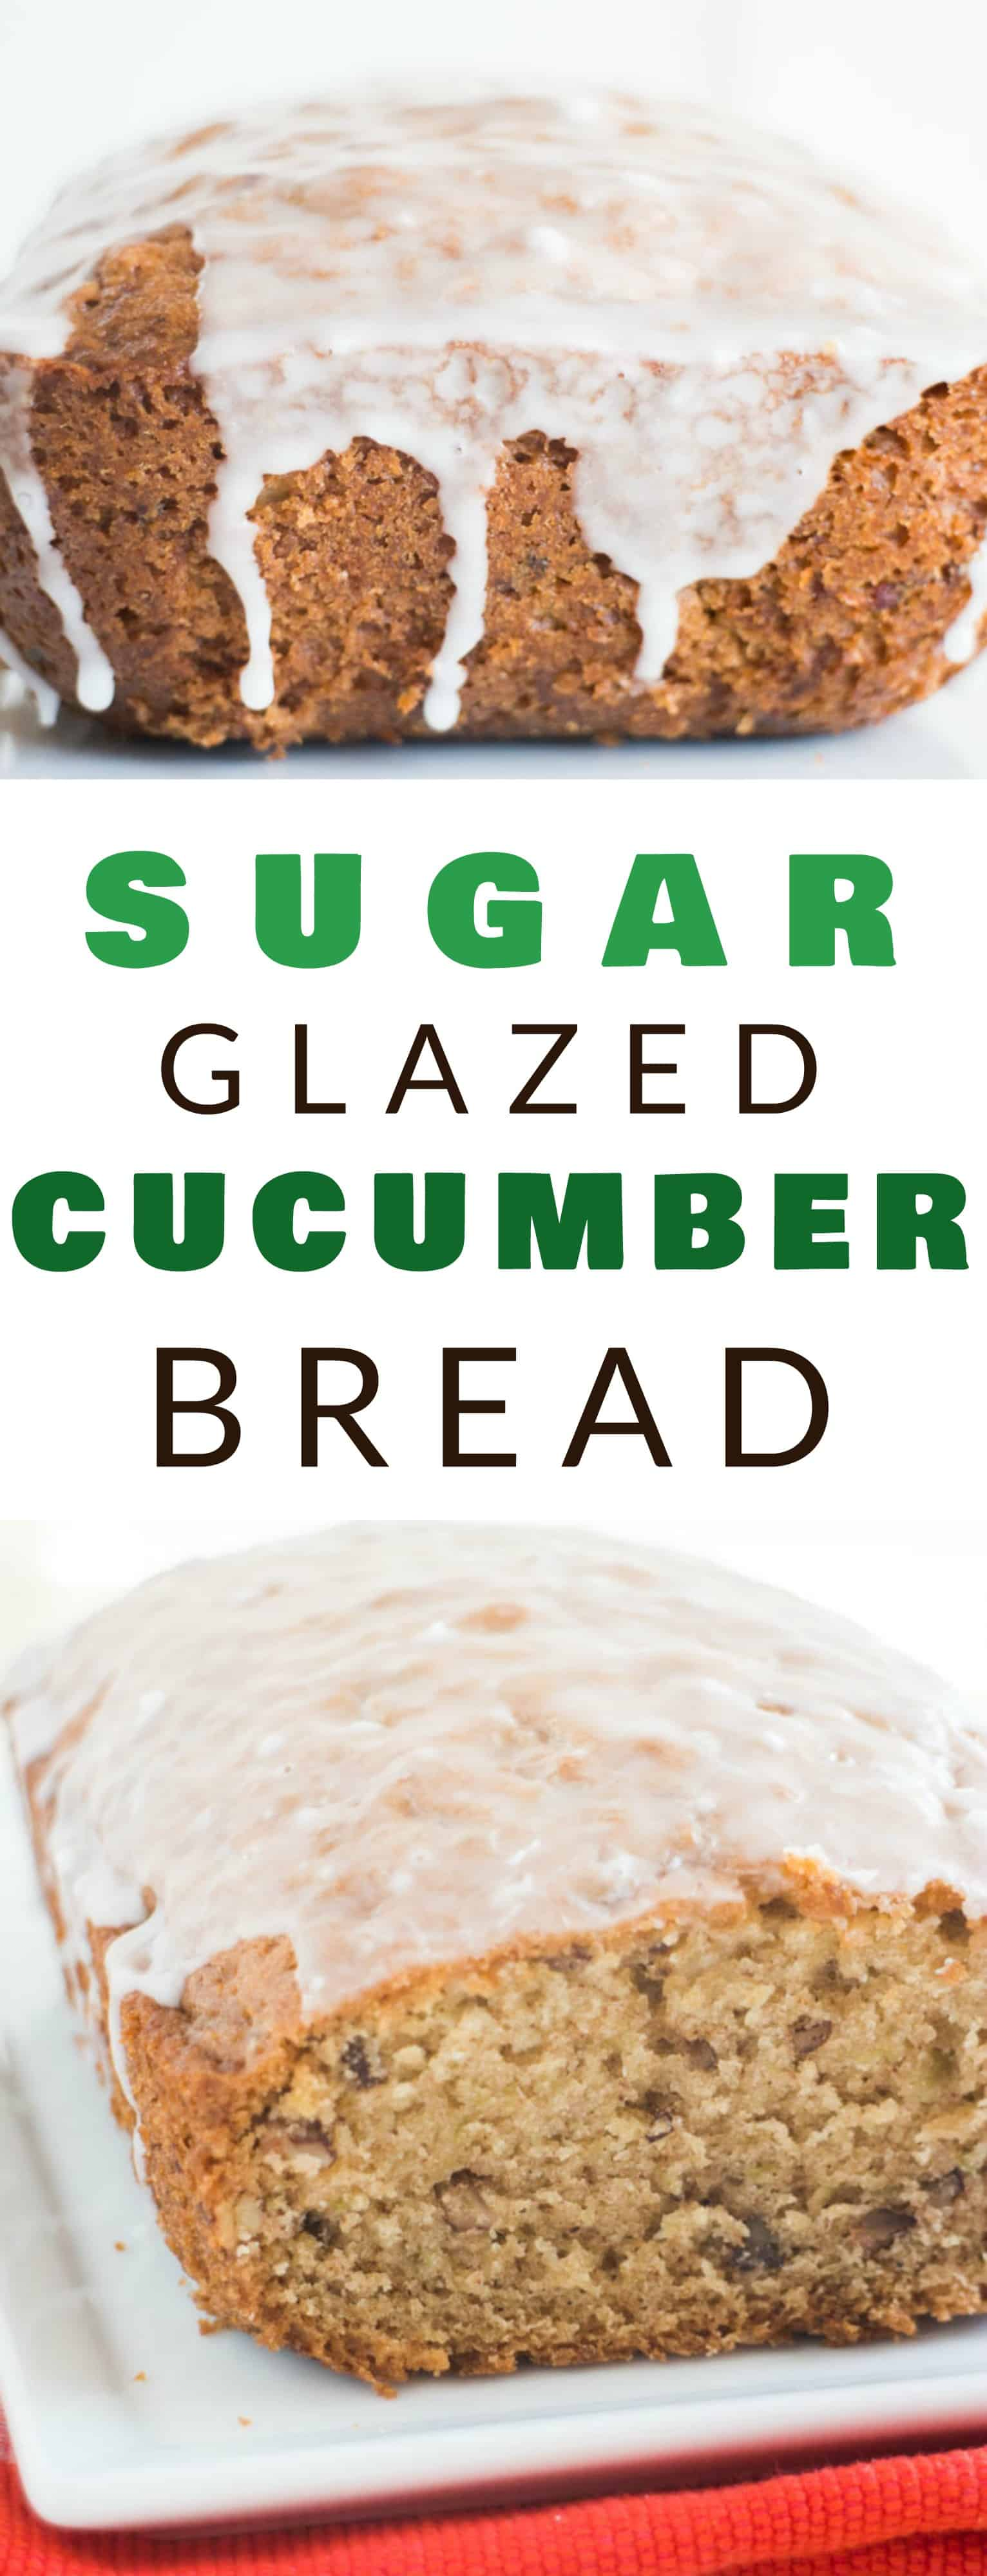 This Sugar Glazed CUCUMBER Bread is delicious and so moist!   It tastes just like zucchini bread, but it's made with 1 cup grated cucumber.  The healthy recipe is easy to make and is a great way to eat your vegetables!  A powdered sugar glaze is poured on top once baked! Everyone in my family LOVES it - even toddlers!